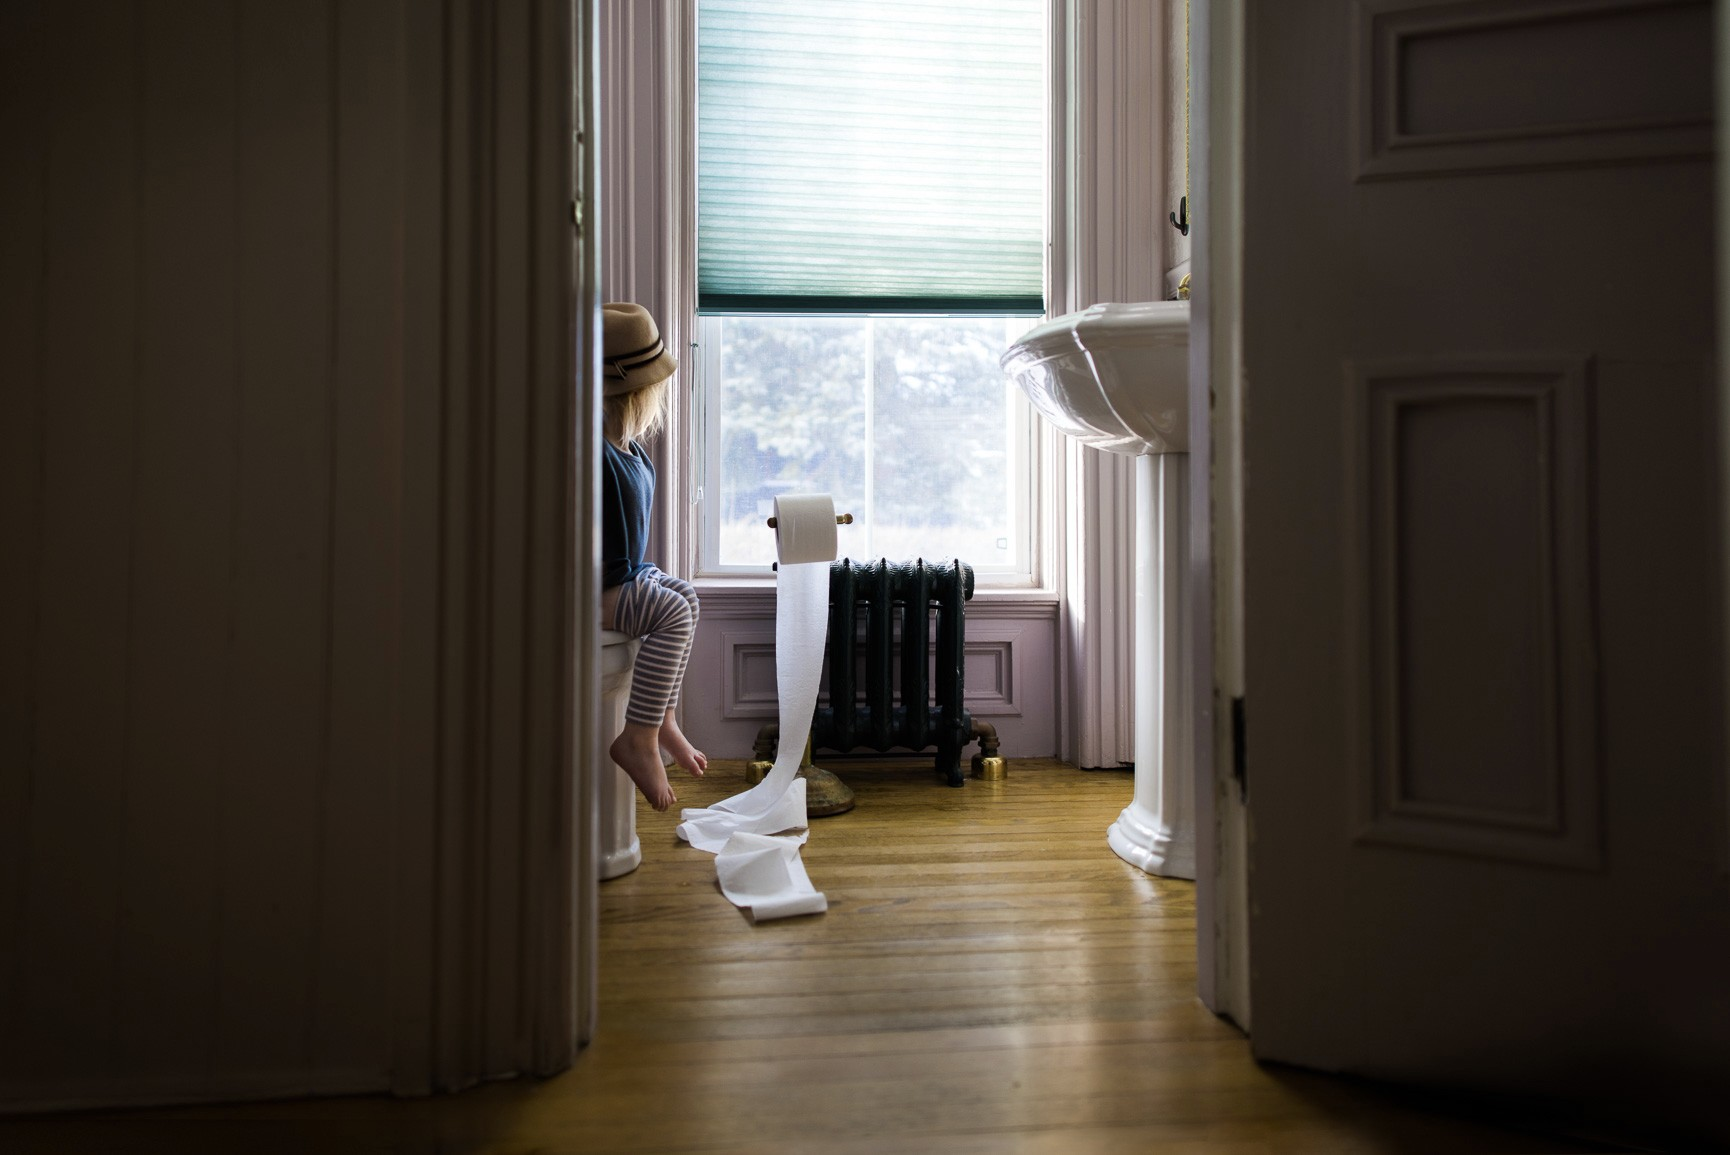 Everyday-Life-by-Sarah-Wilkerson-1730px–5